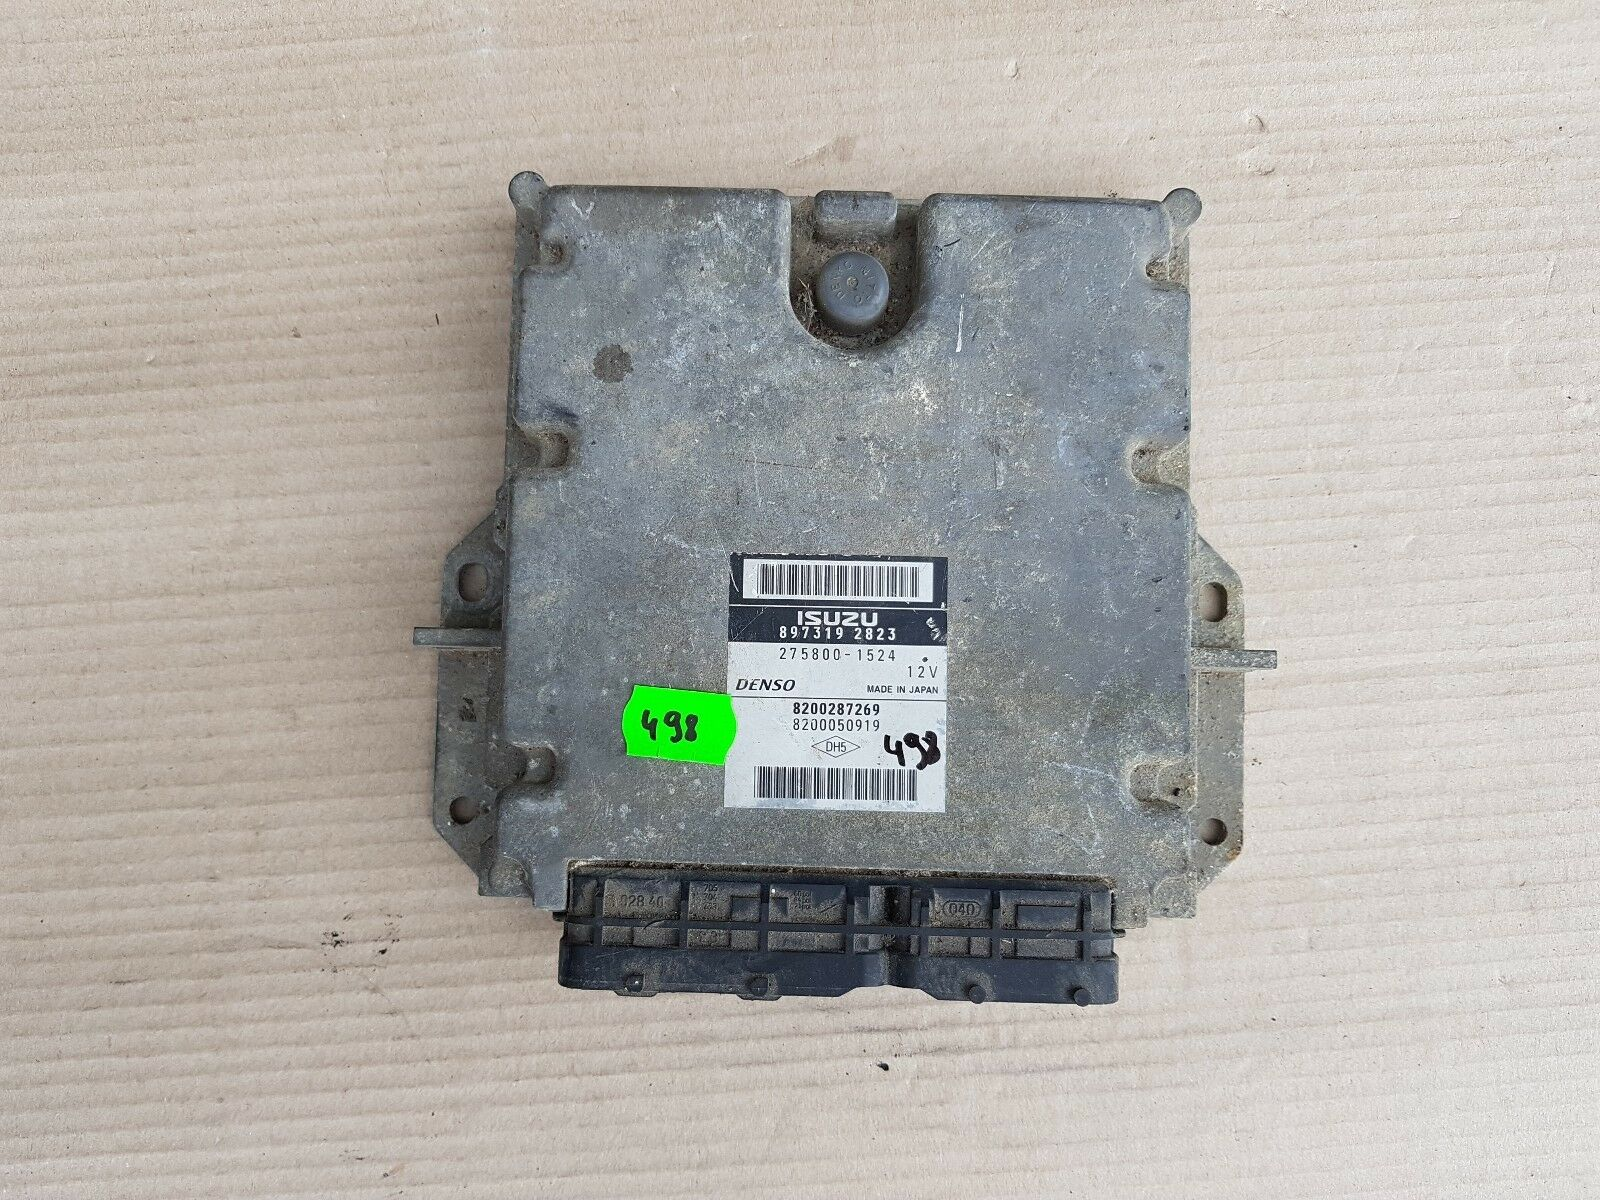 Used Renault Engine Computers For Sale Page 9 Fuse Box On A Espace 8200287269 Control Unit Ecu 275800 1524